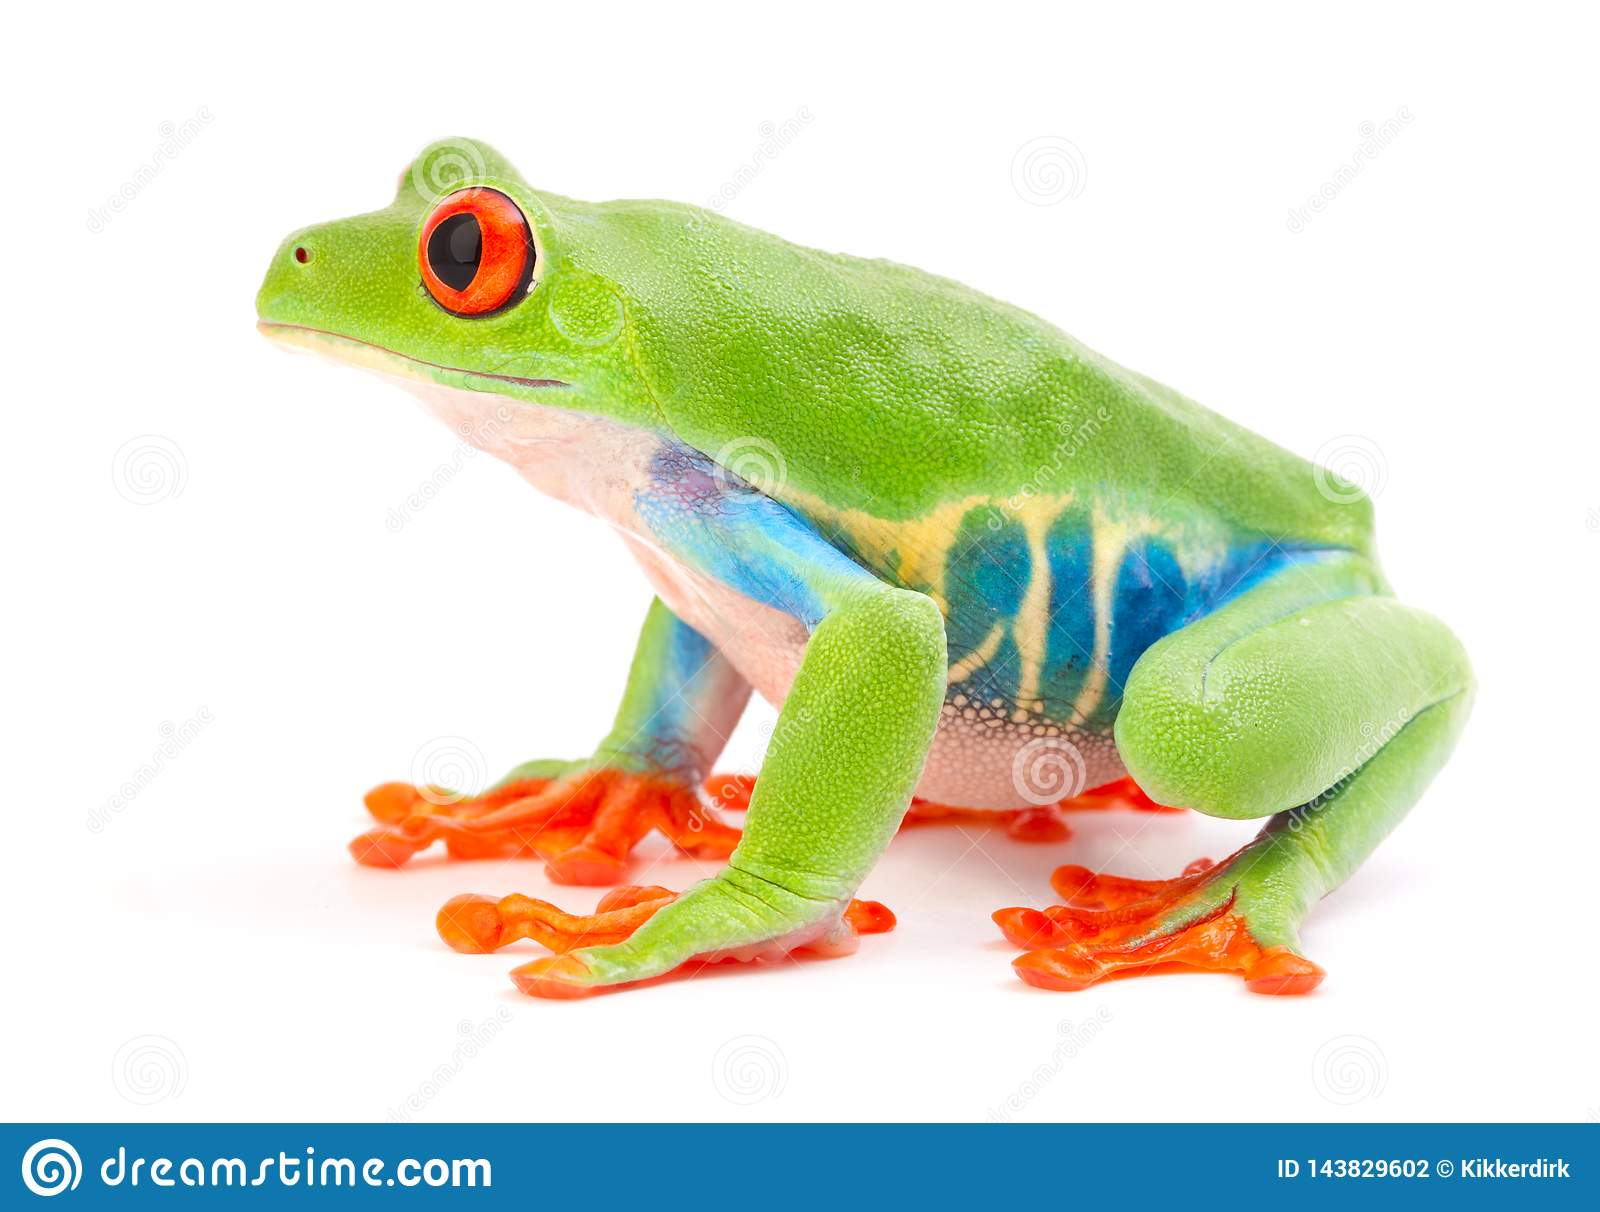 Red eyed tree frog, Agalychnis callydrias from the tropical rain forest